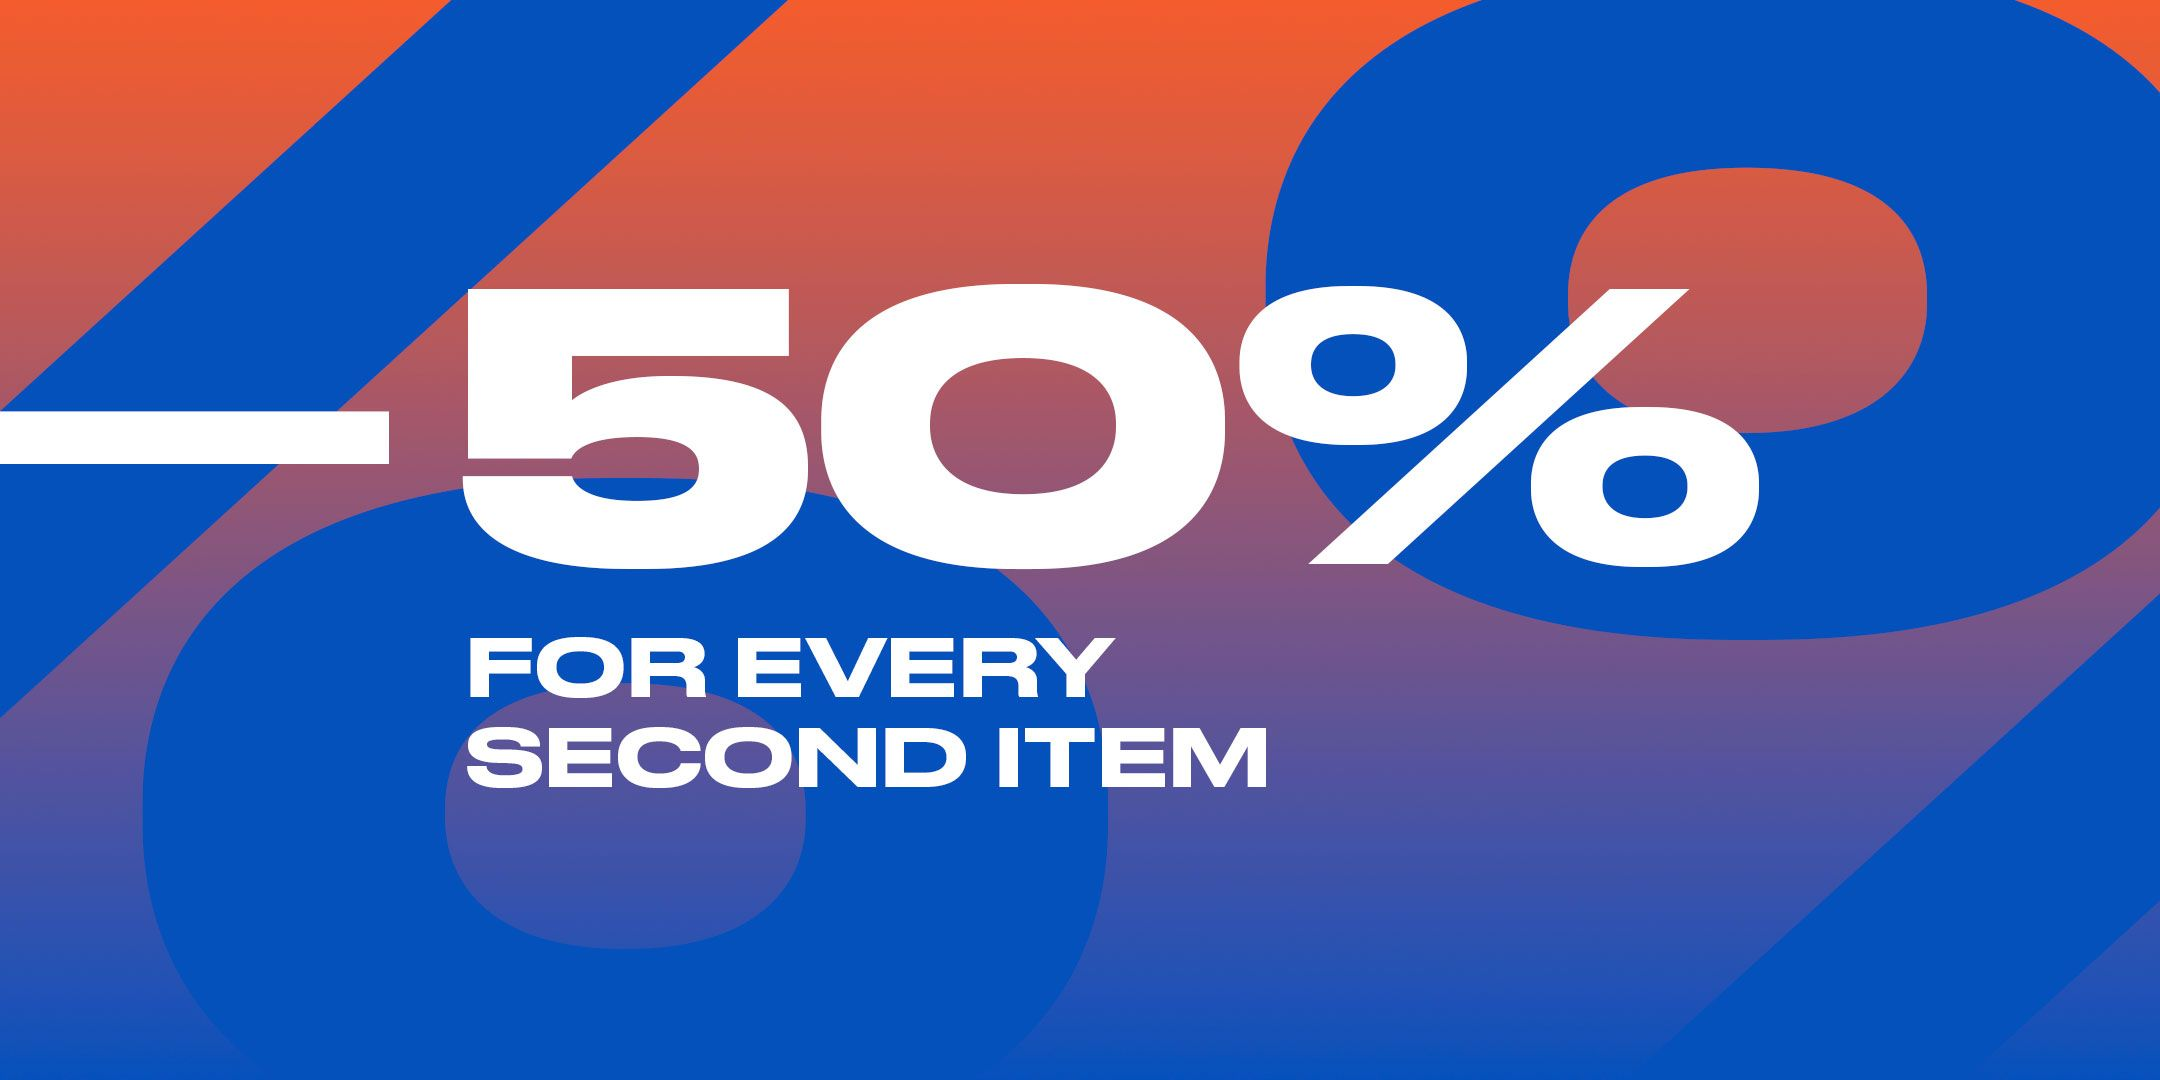 -50% for the second item